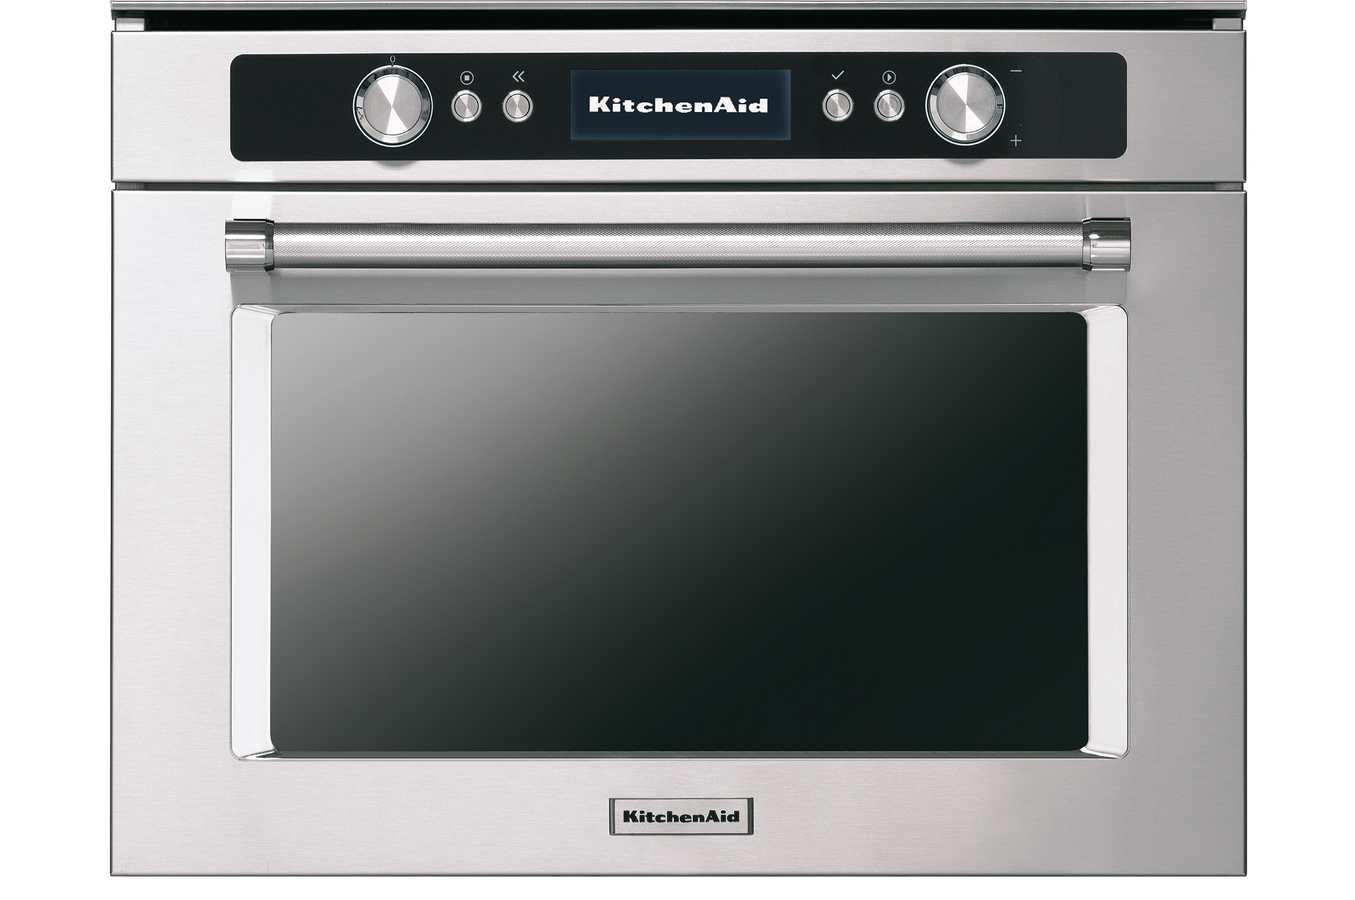 Micro ondes combin encastrable kitchenaid kmqcx45600 inox - Four micro onde encastrable bosch ...